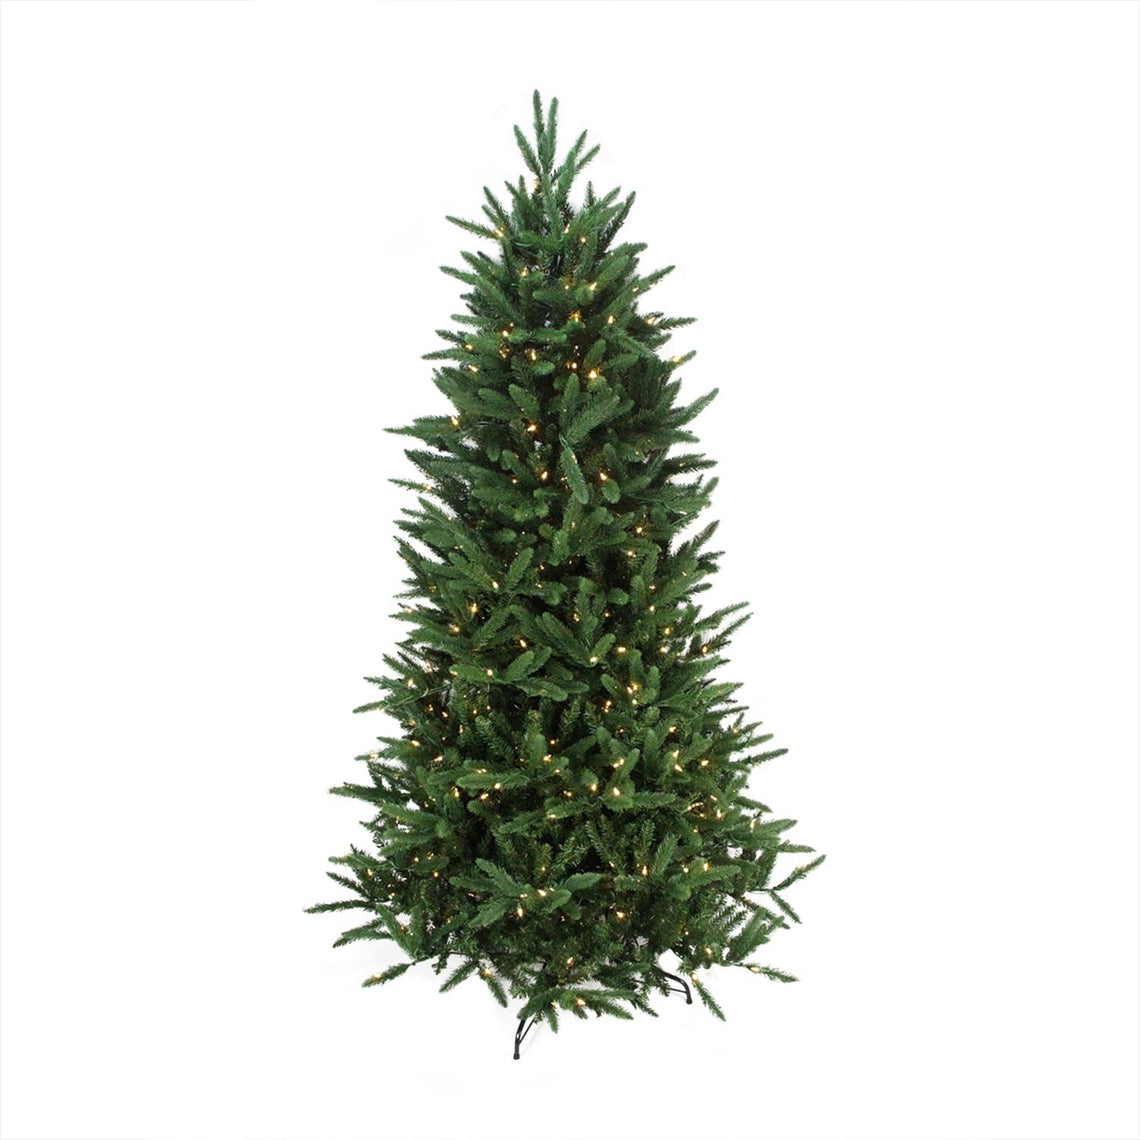 9' Pre-Lit PE/PVC Mixed Pine Multi-Function Artificial Christmas Tree- w/ Remote Control -Clear/Multi